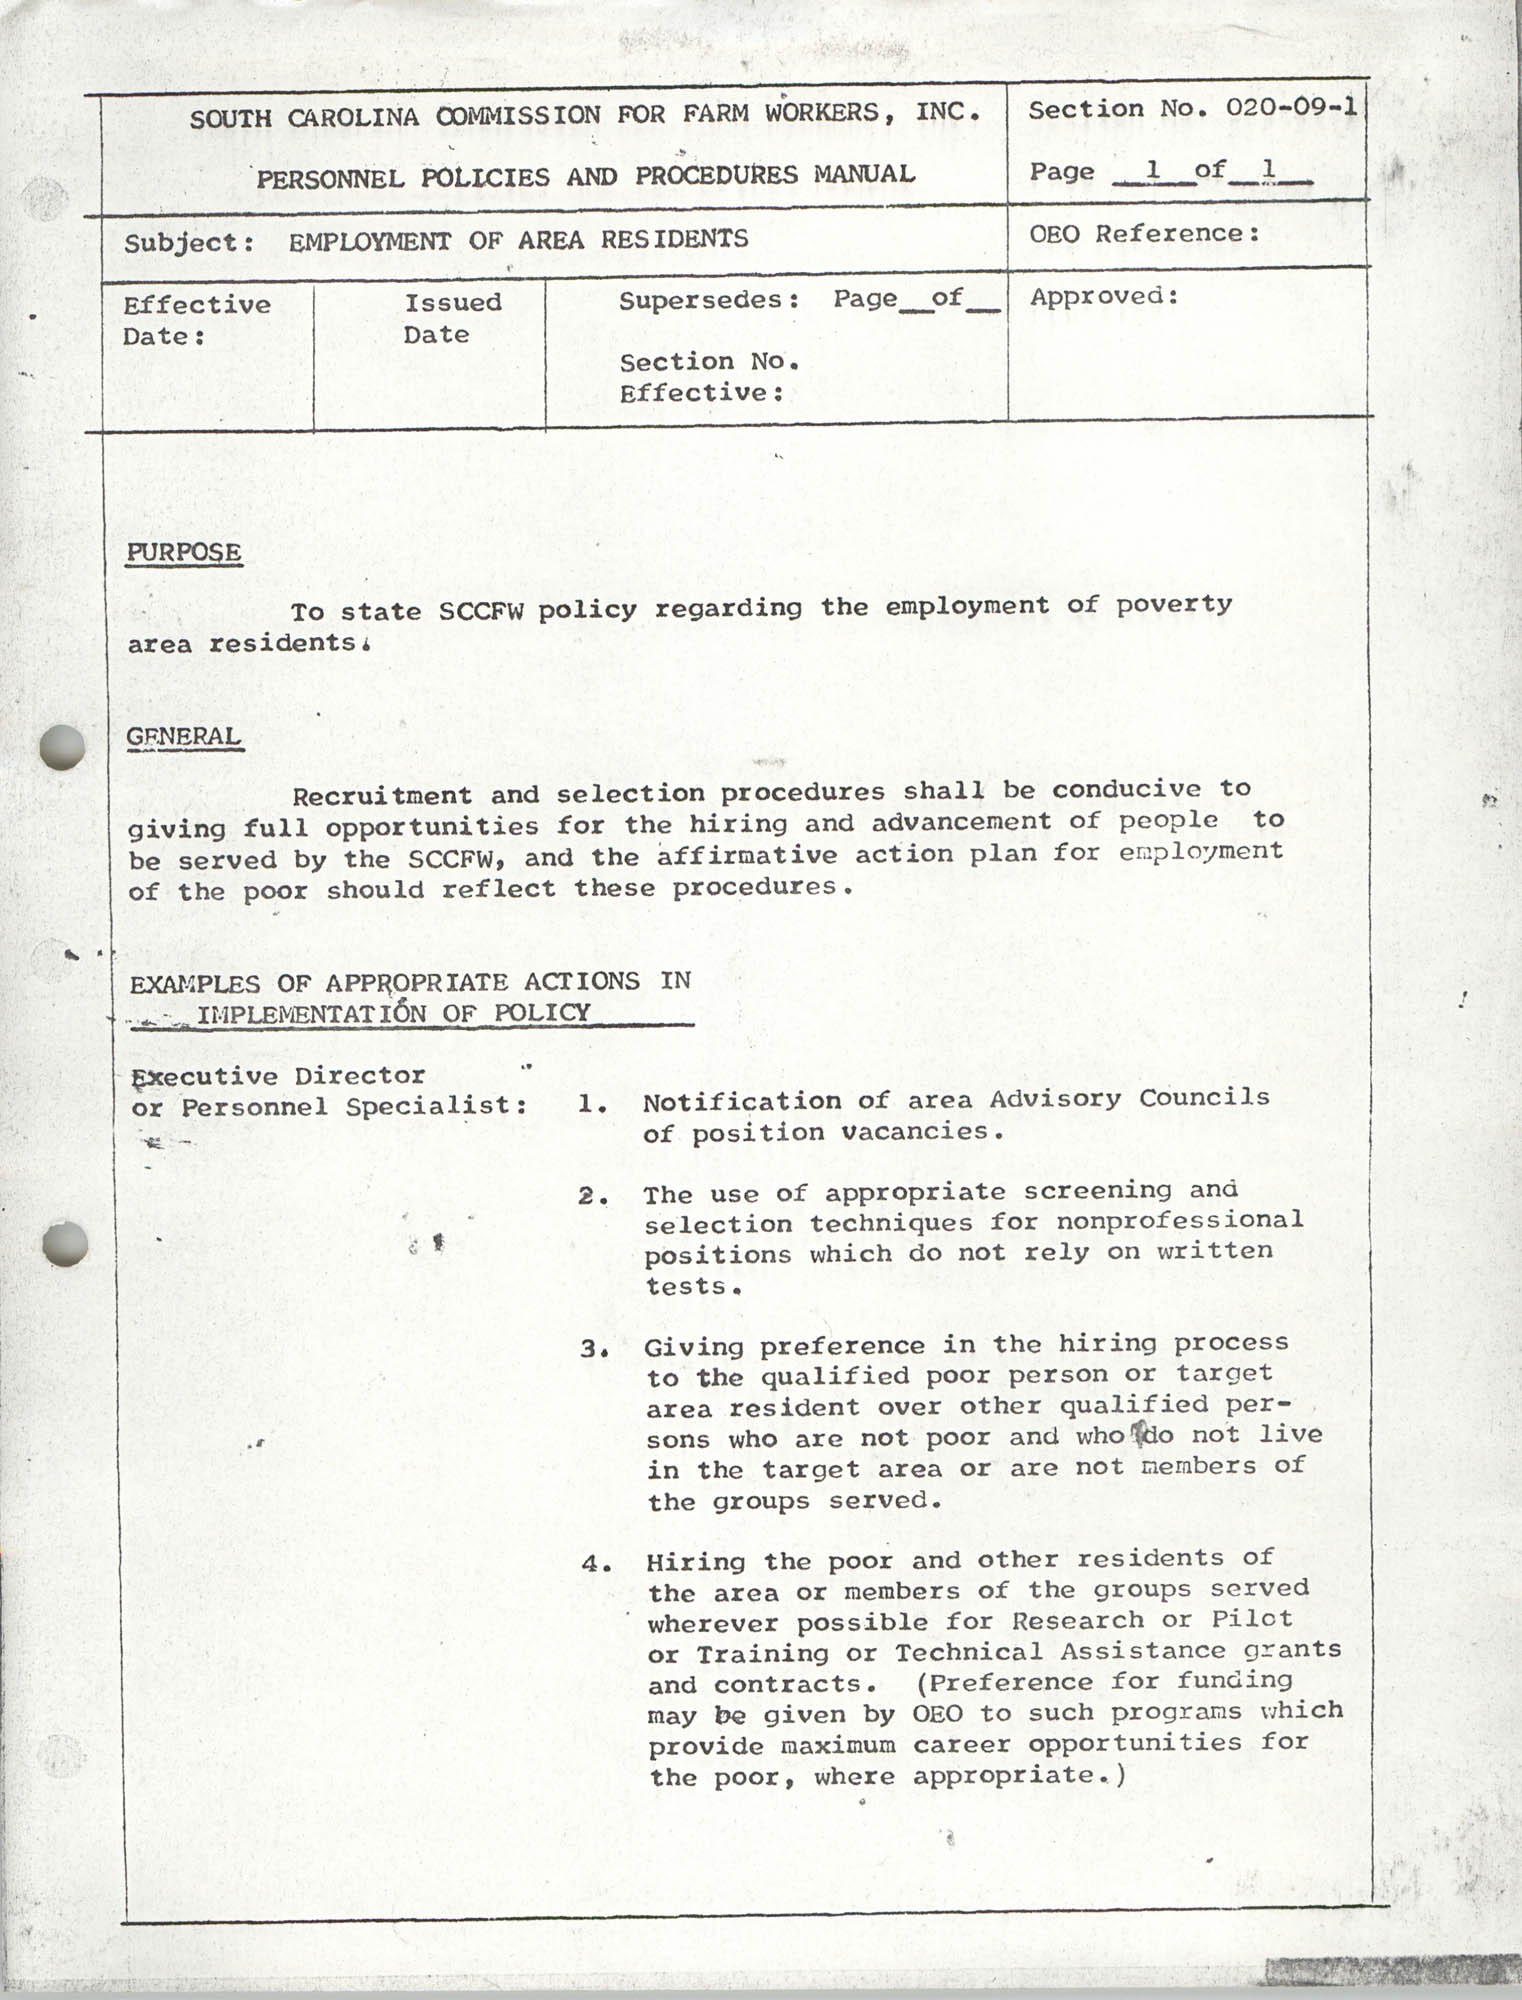 Personnel Policies and Procedures Manual, Section No. 020-09-1